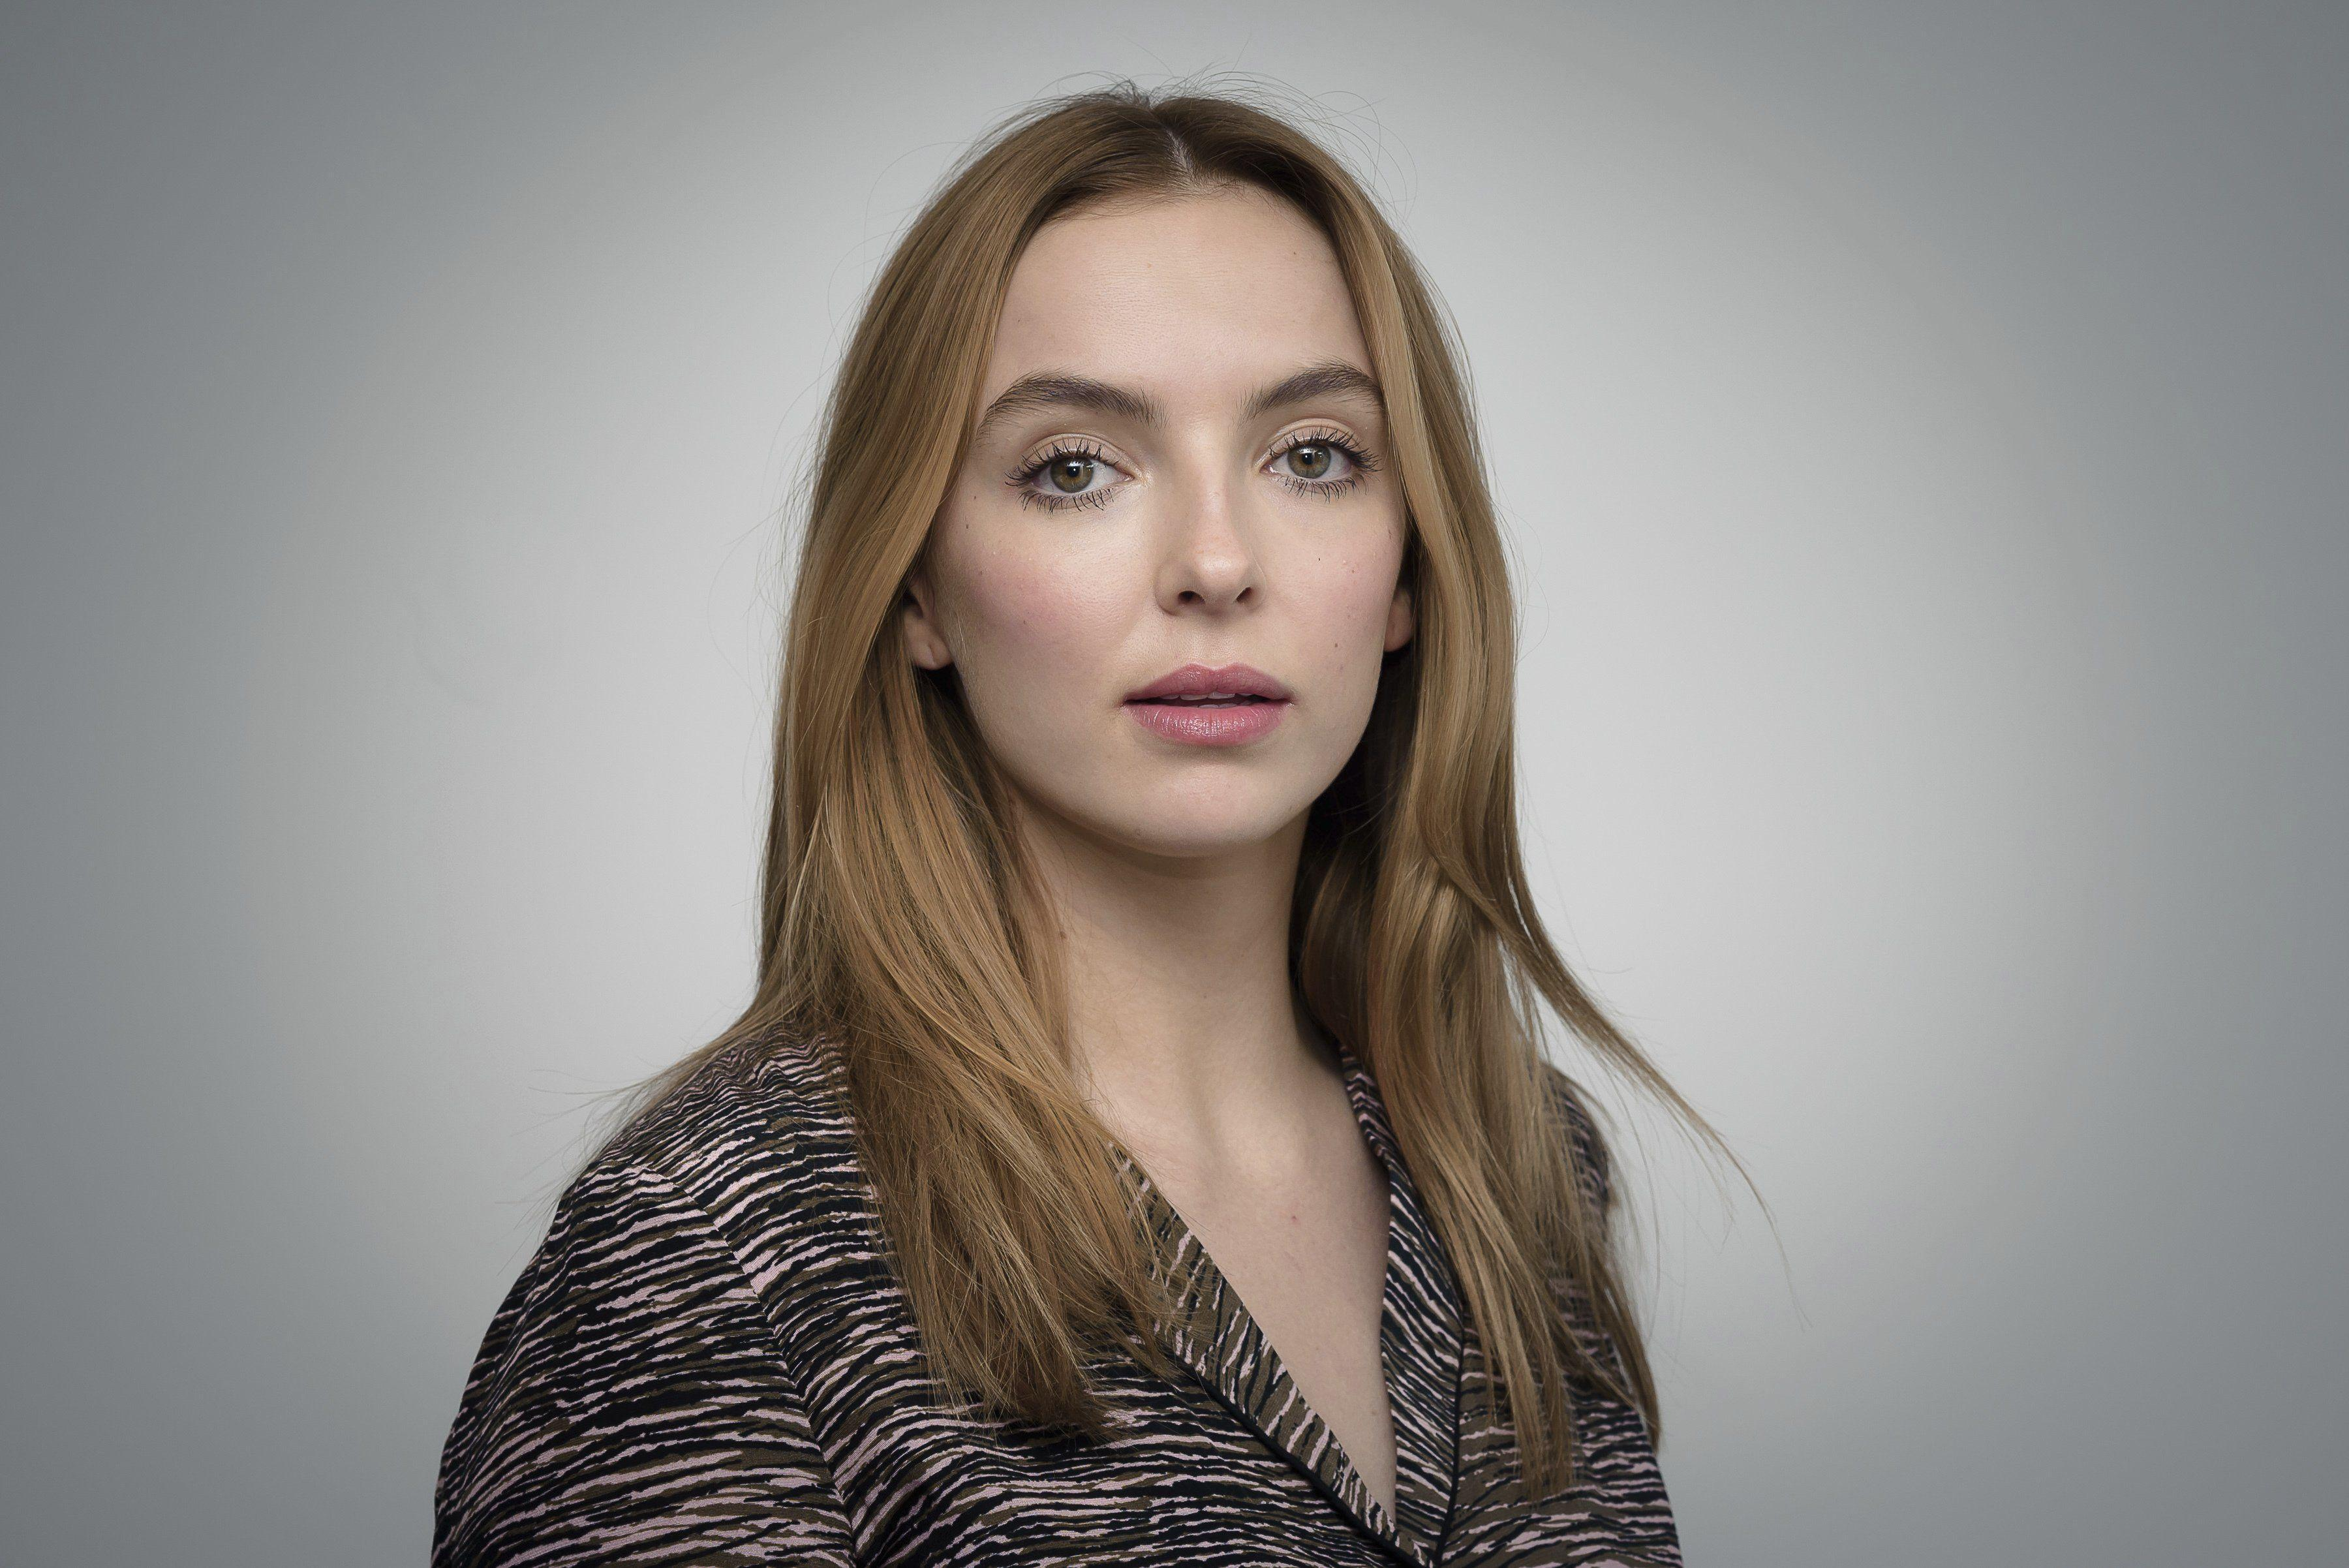 Jodie Comer Killing Eve Actress, HD 4K Wallpaper